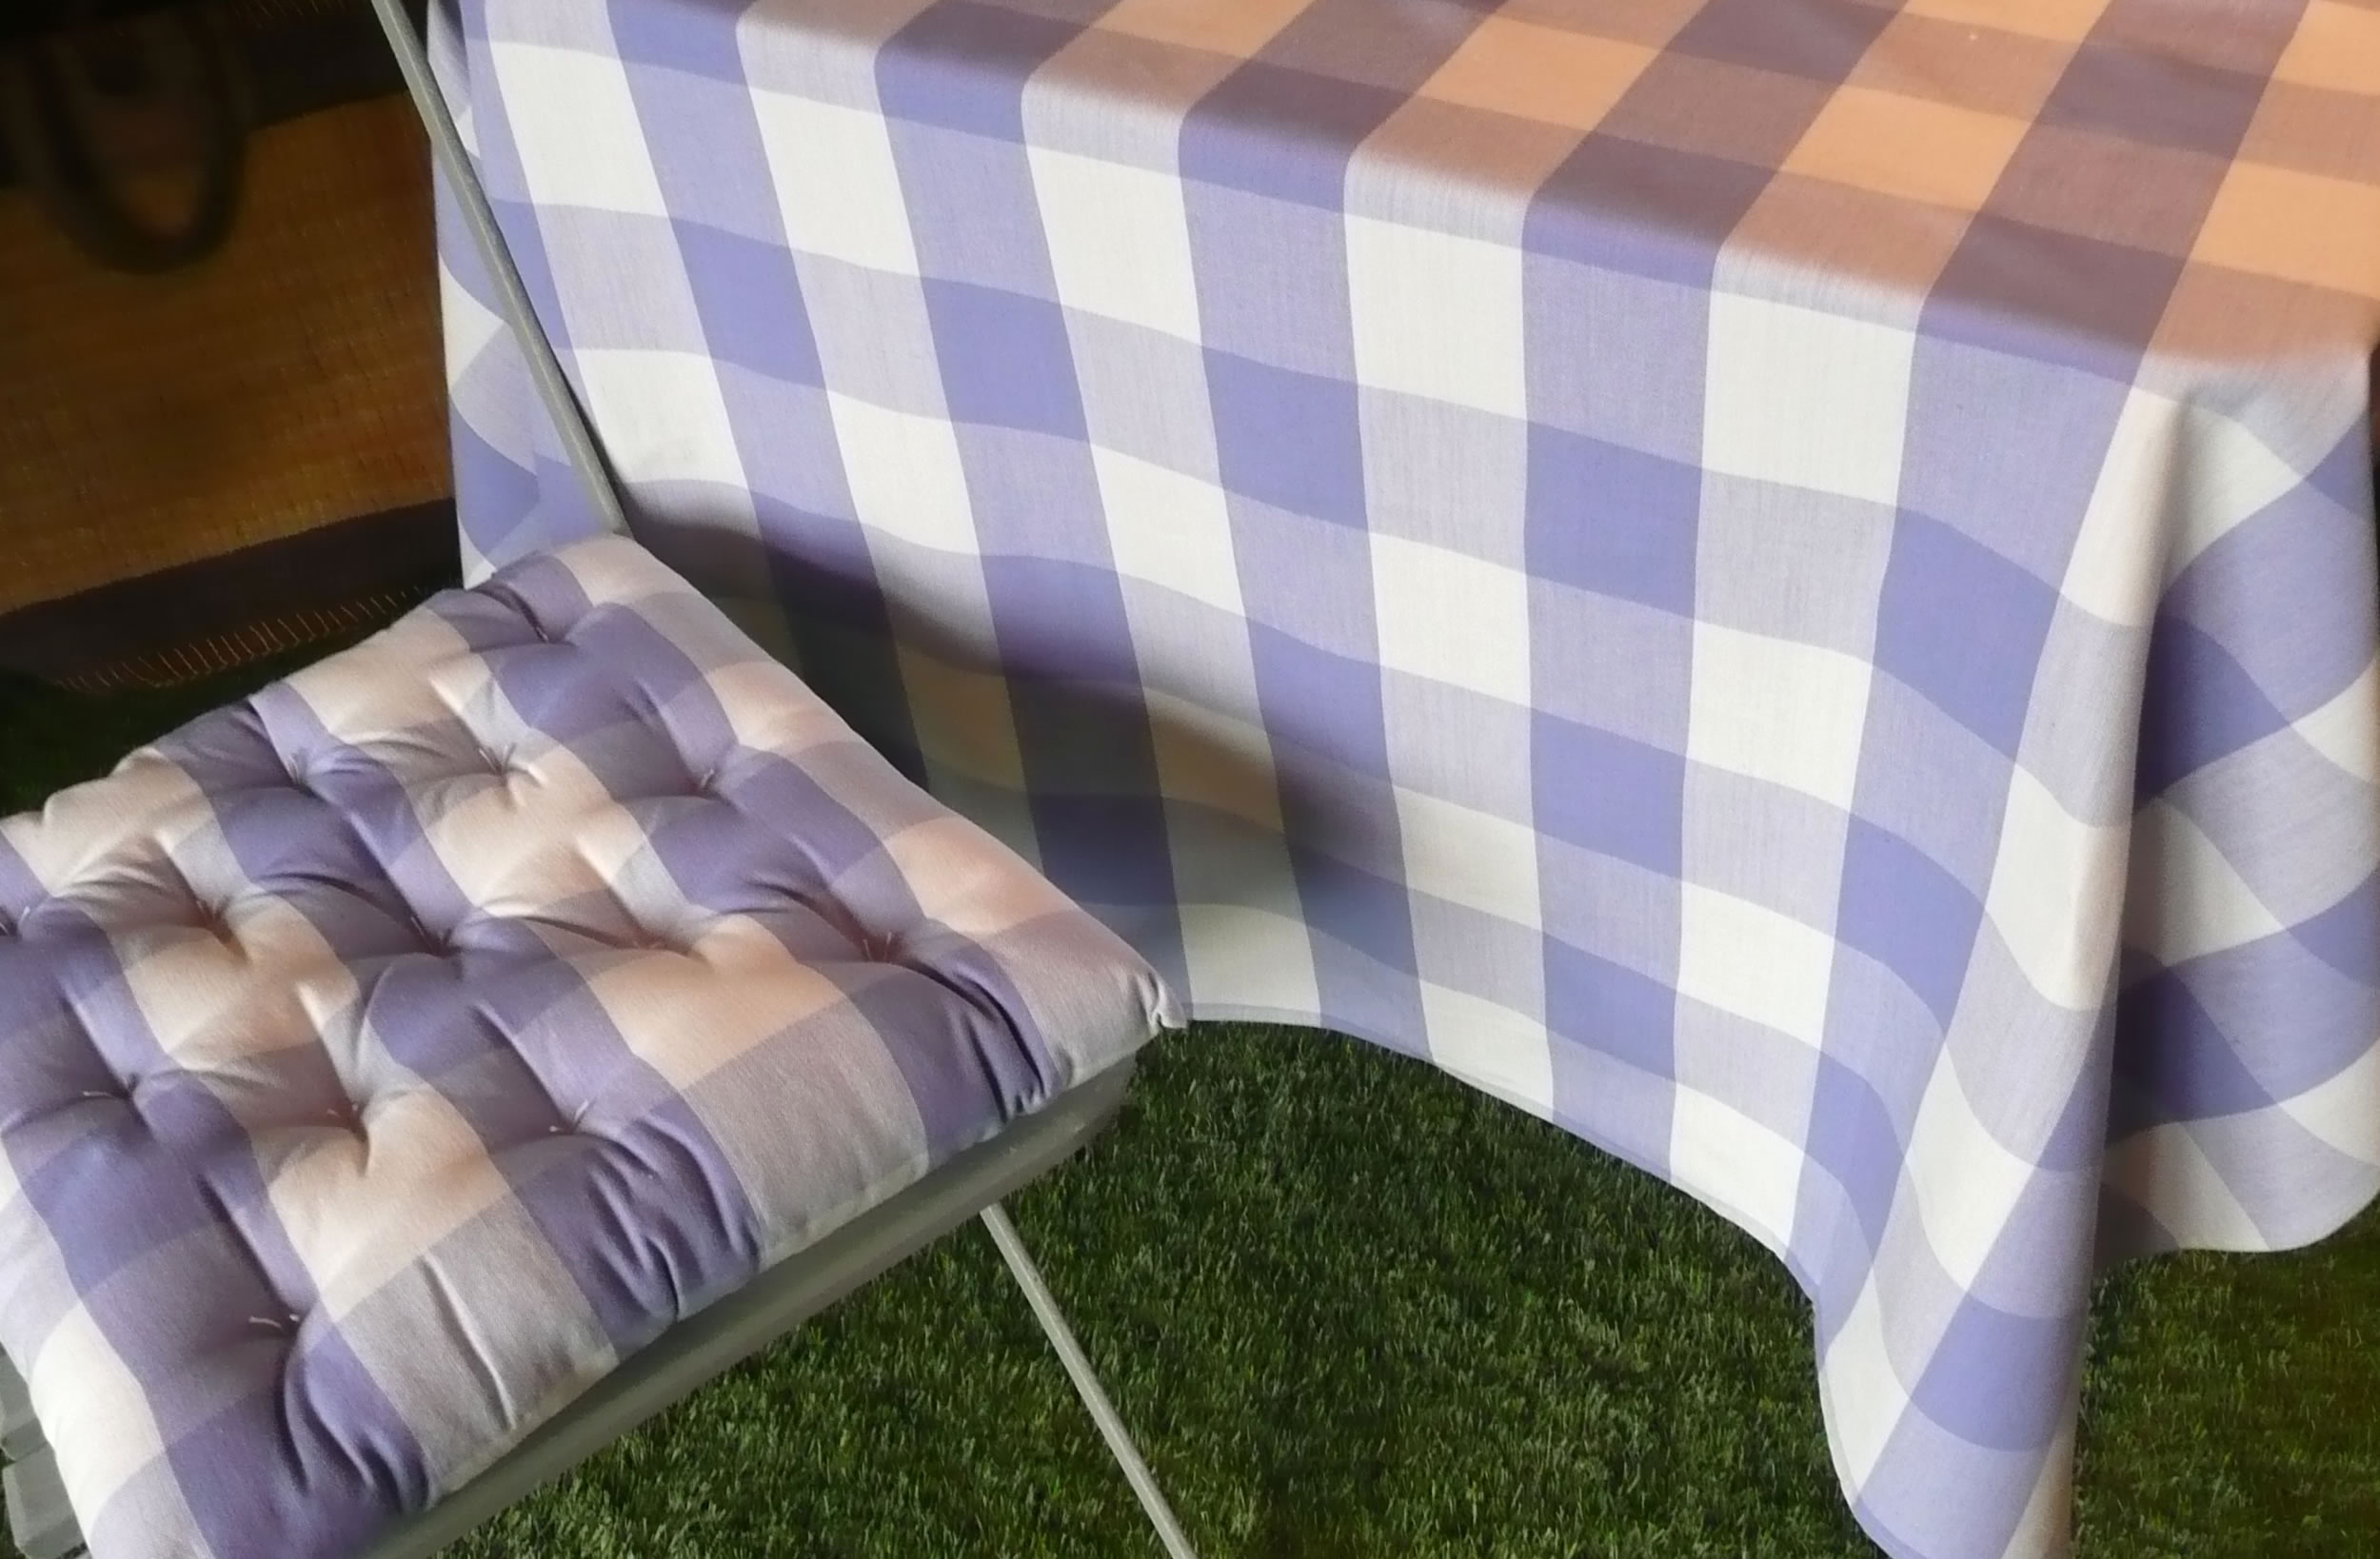 Gingham Large Check Fabric   Lavender Blue And White Checks